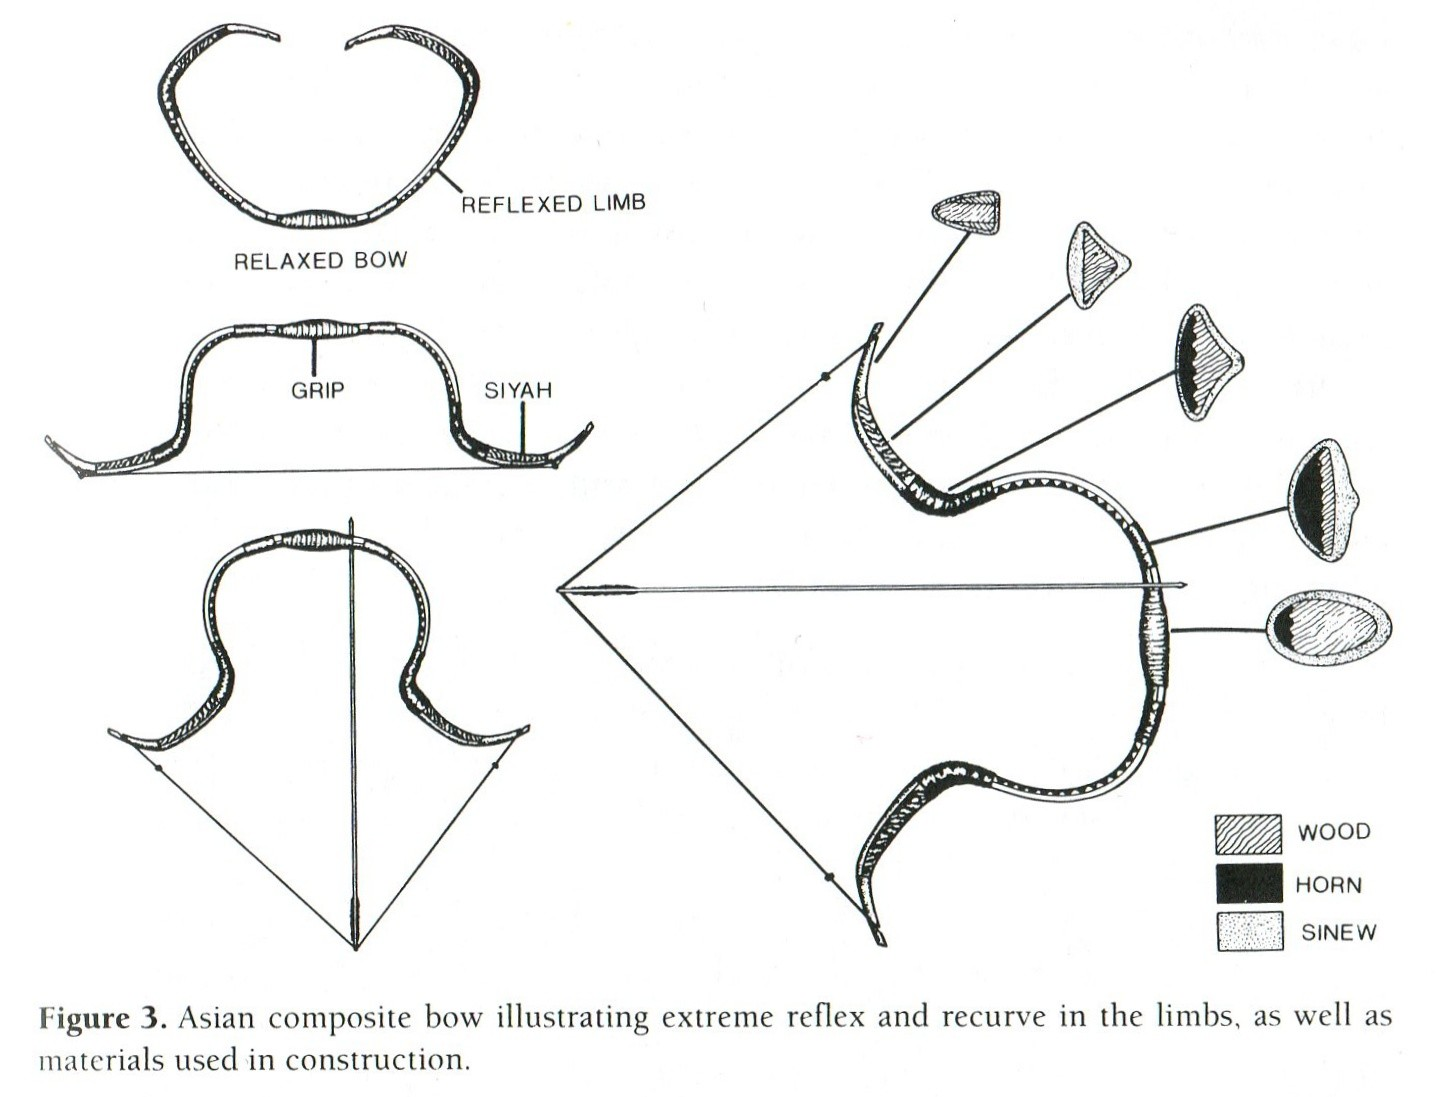 Construction Materials Of Asian Bow